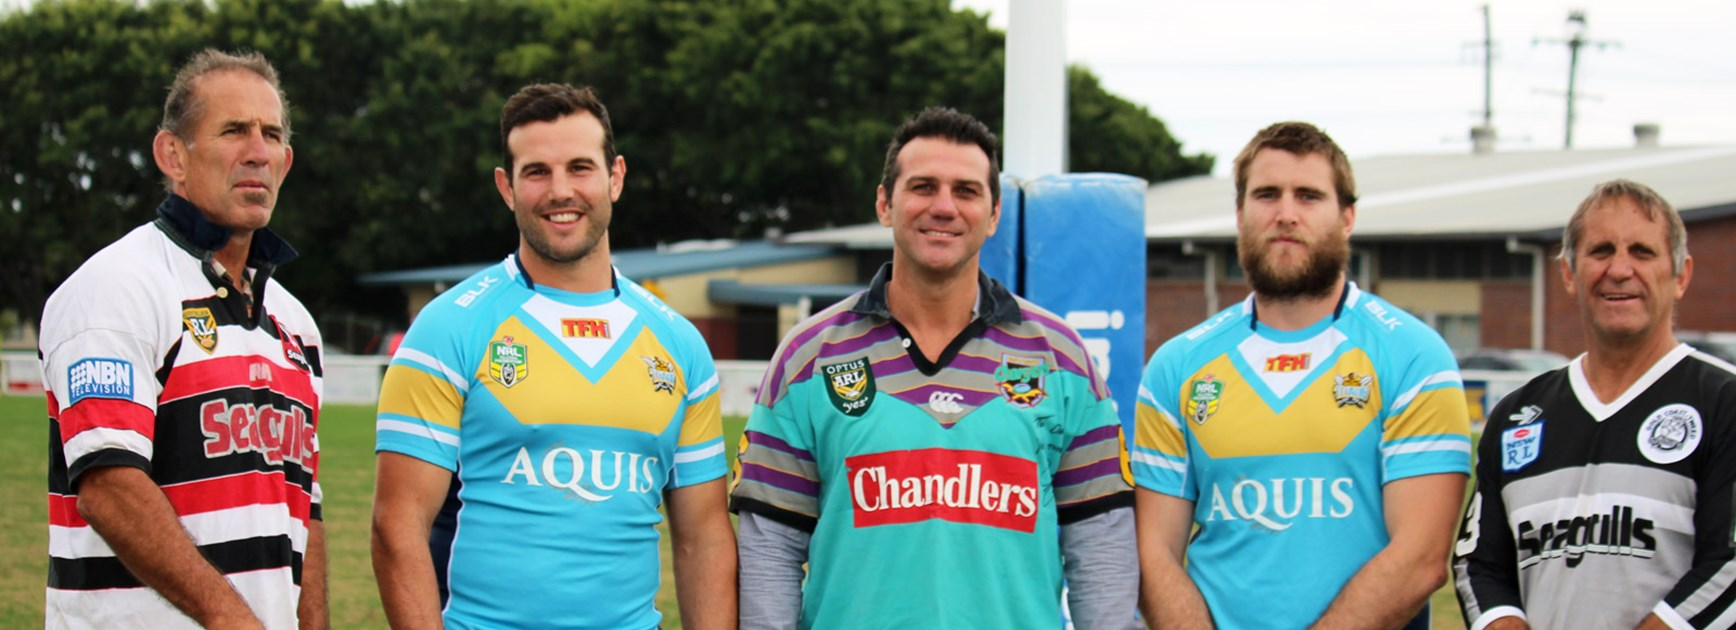 Members of all four Gold Coast teams will form a guard of honour for the Titans when they run out on Sunday.